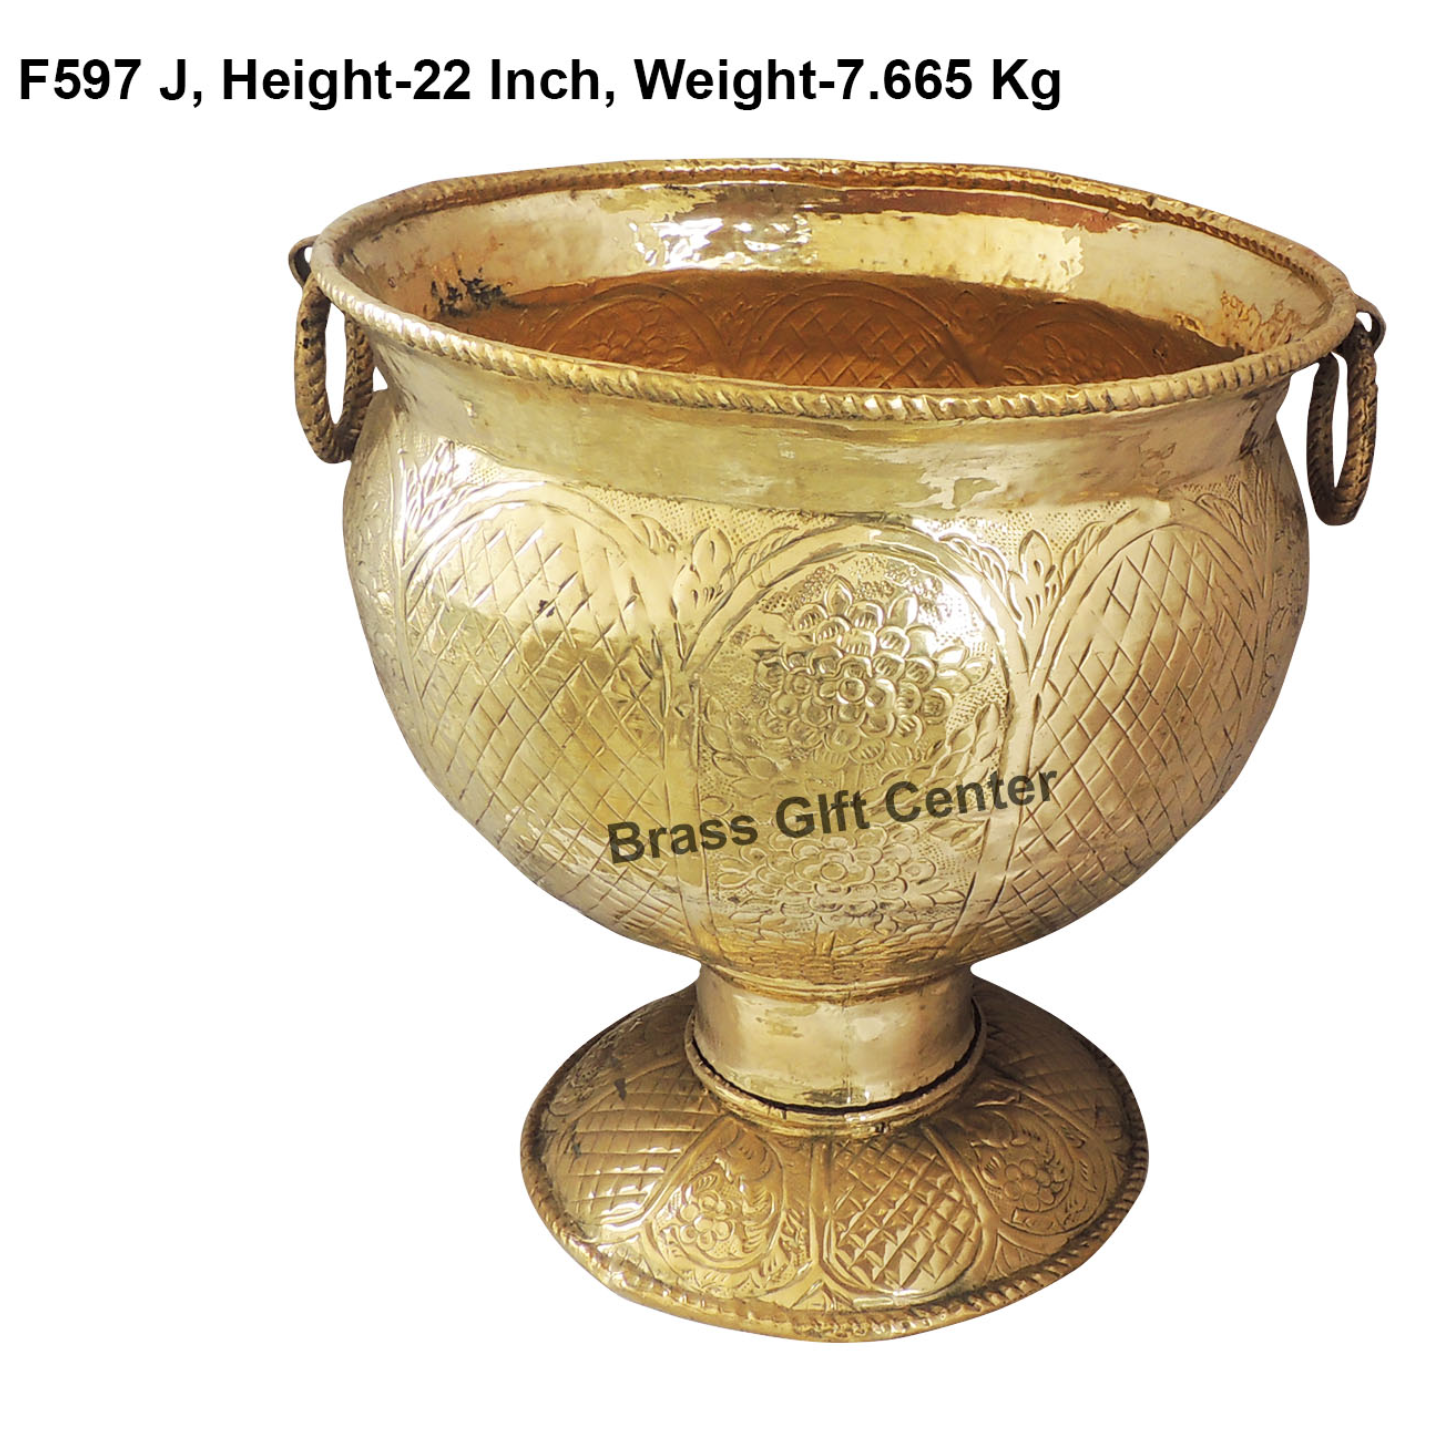 Brass Planter with Base - 202022 inch F597 J